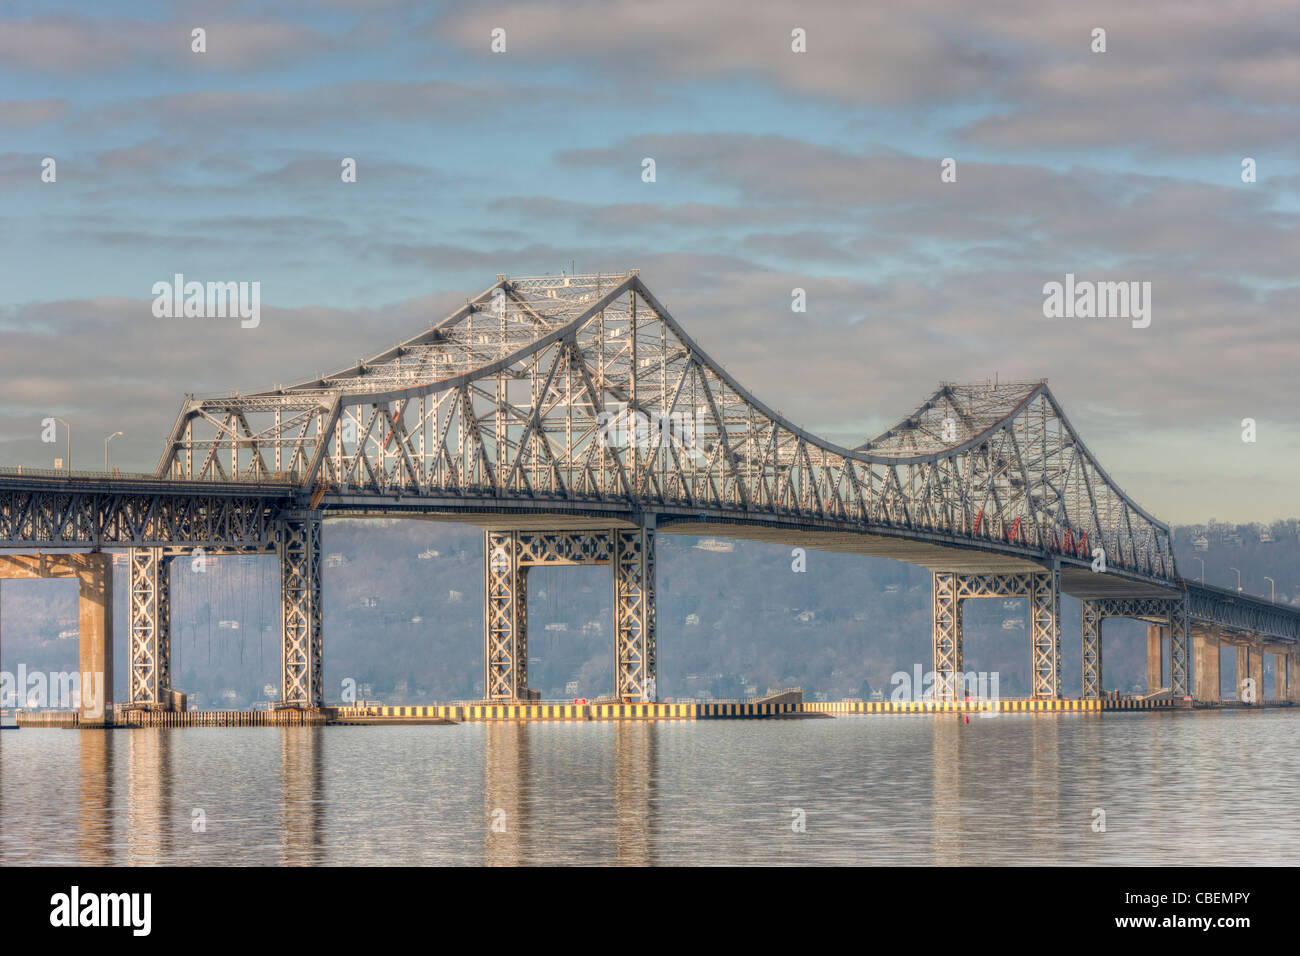 The Tappan Zee Bridge spans the Hudson River under a partly cloudy morning sky as seen from Tarrytown, New York. - Stock Image